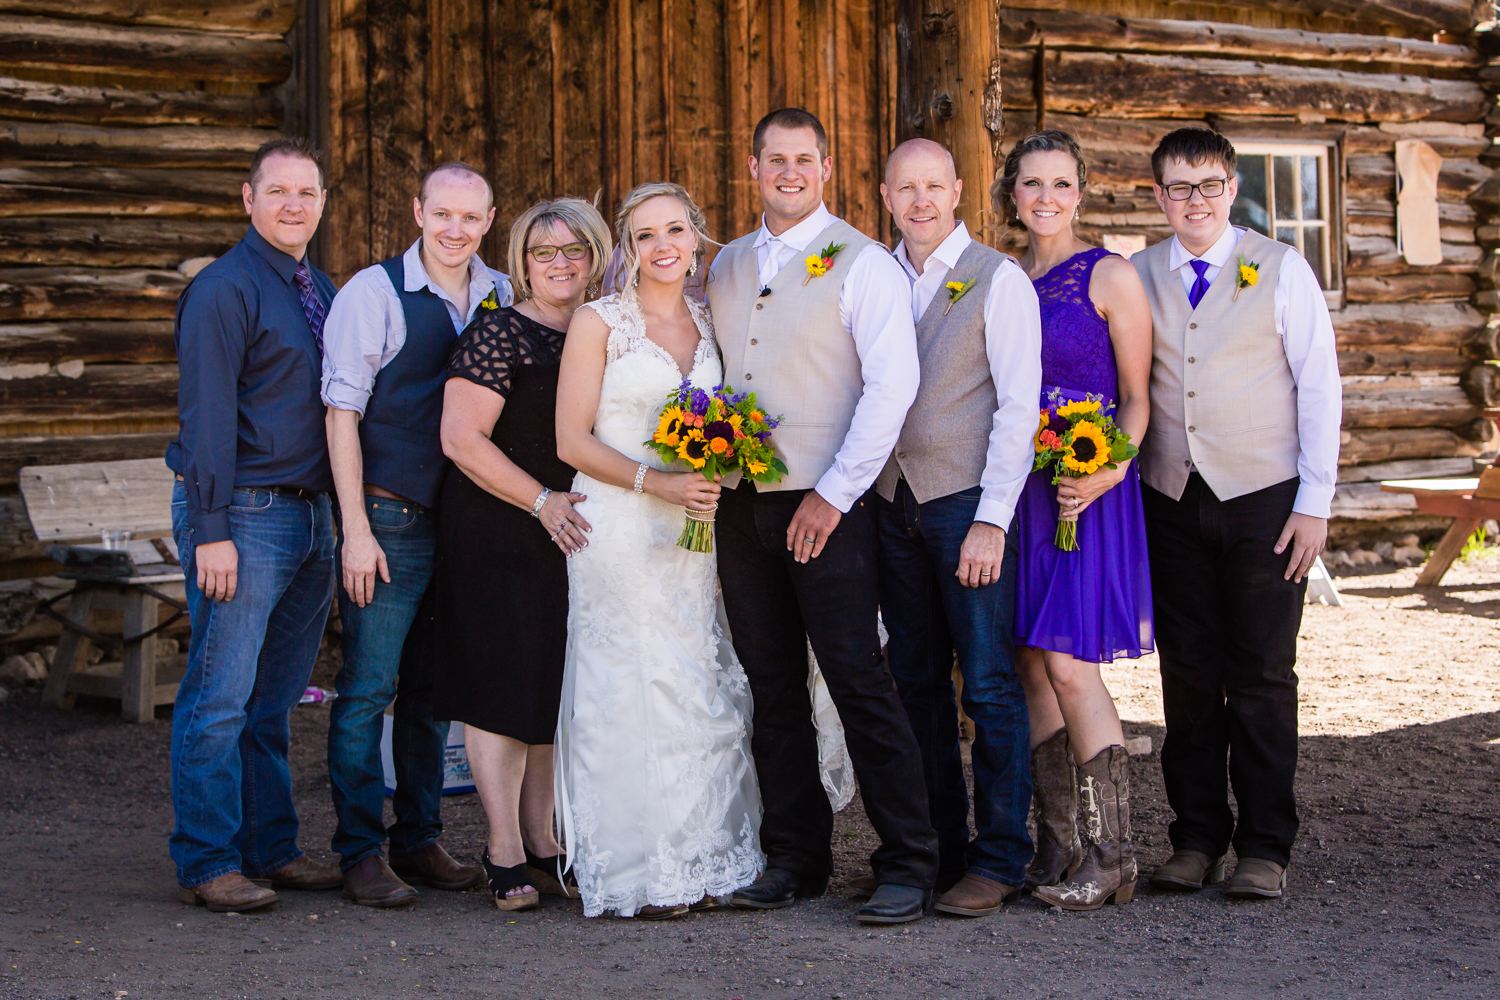 Family formals. Wedding at The barn at Evergreen Memorial. Photographed by JMGant Photography.